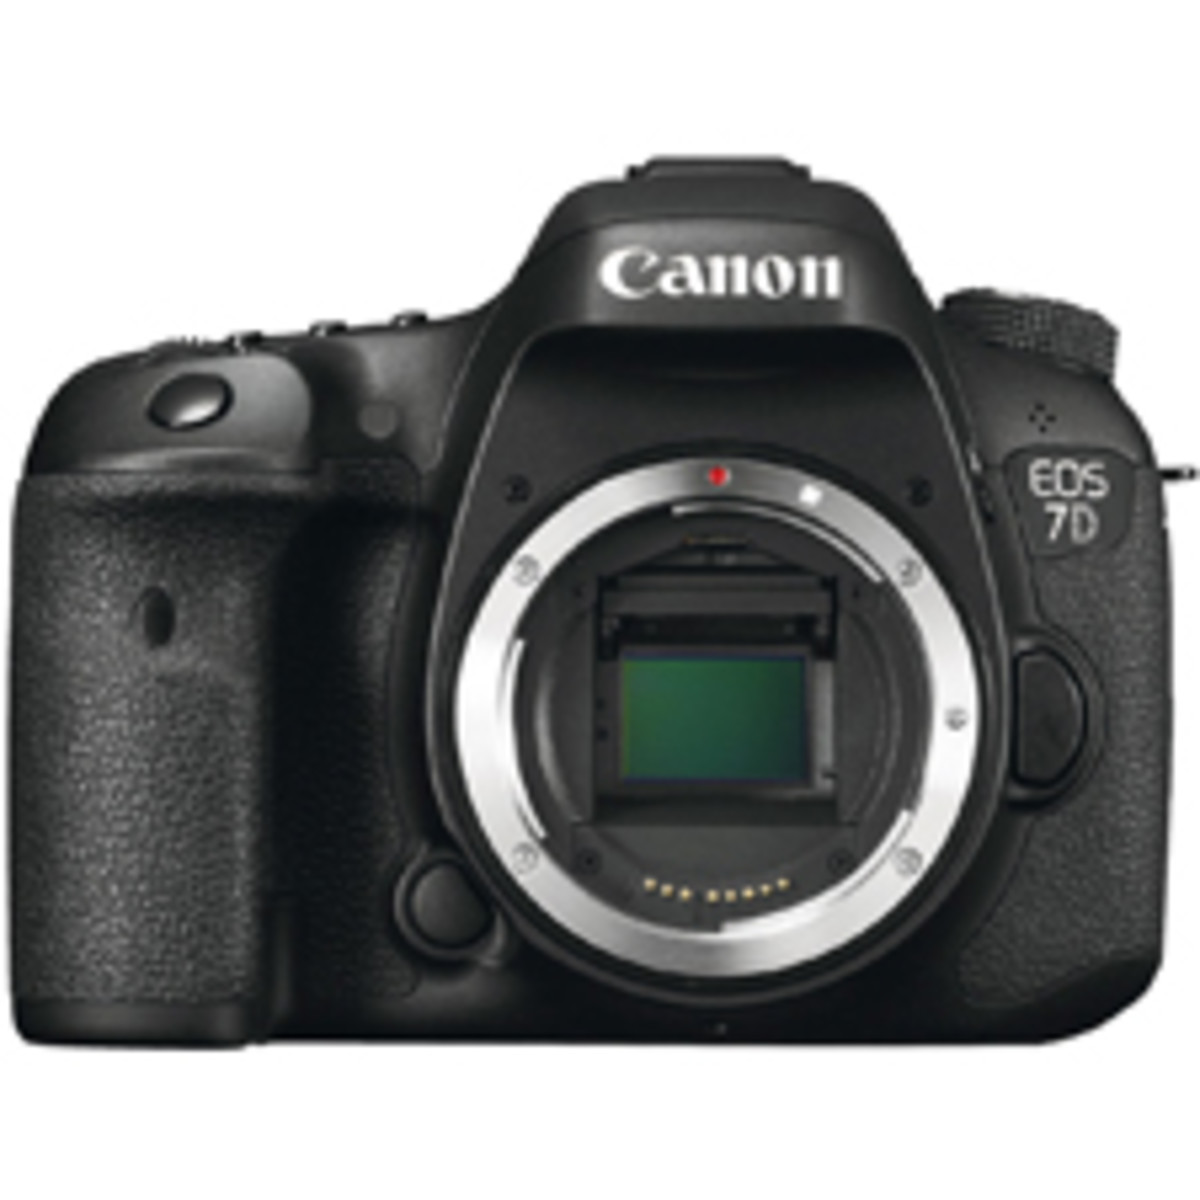 The Canon 7d - an affordable camera perfect for motor sports photography